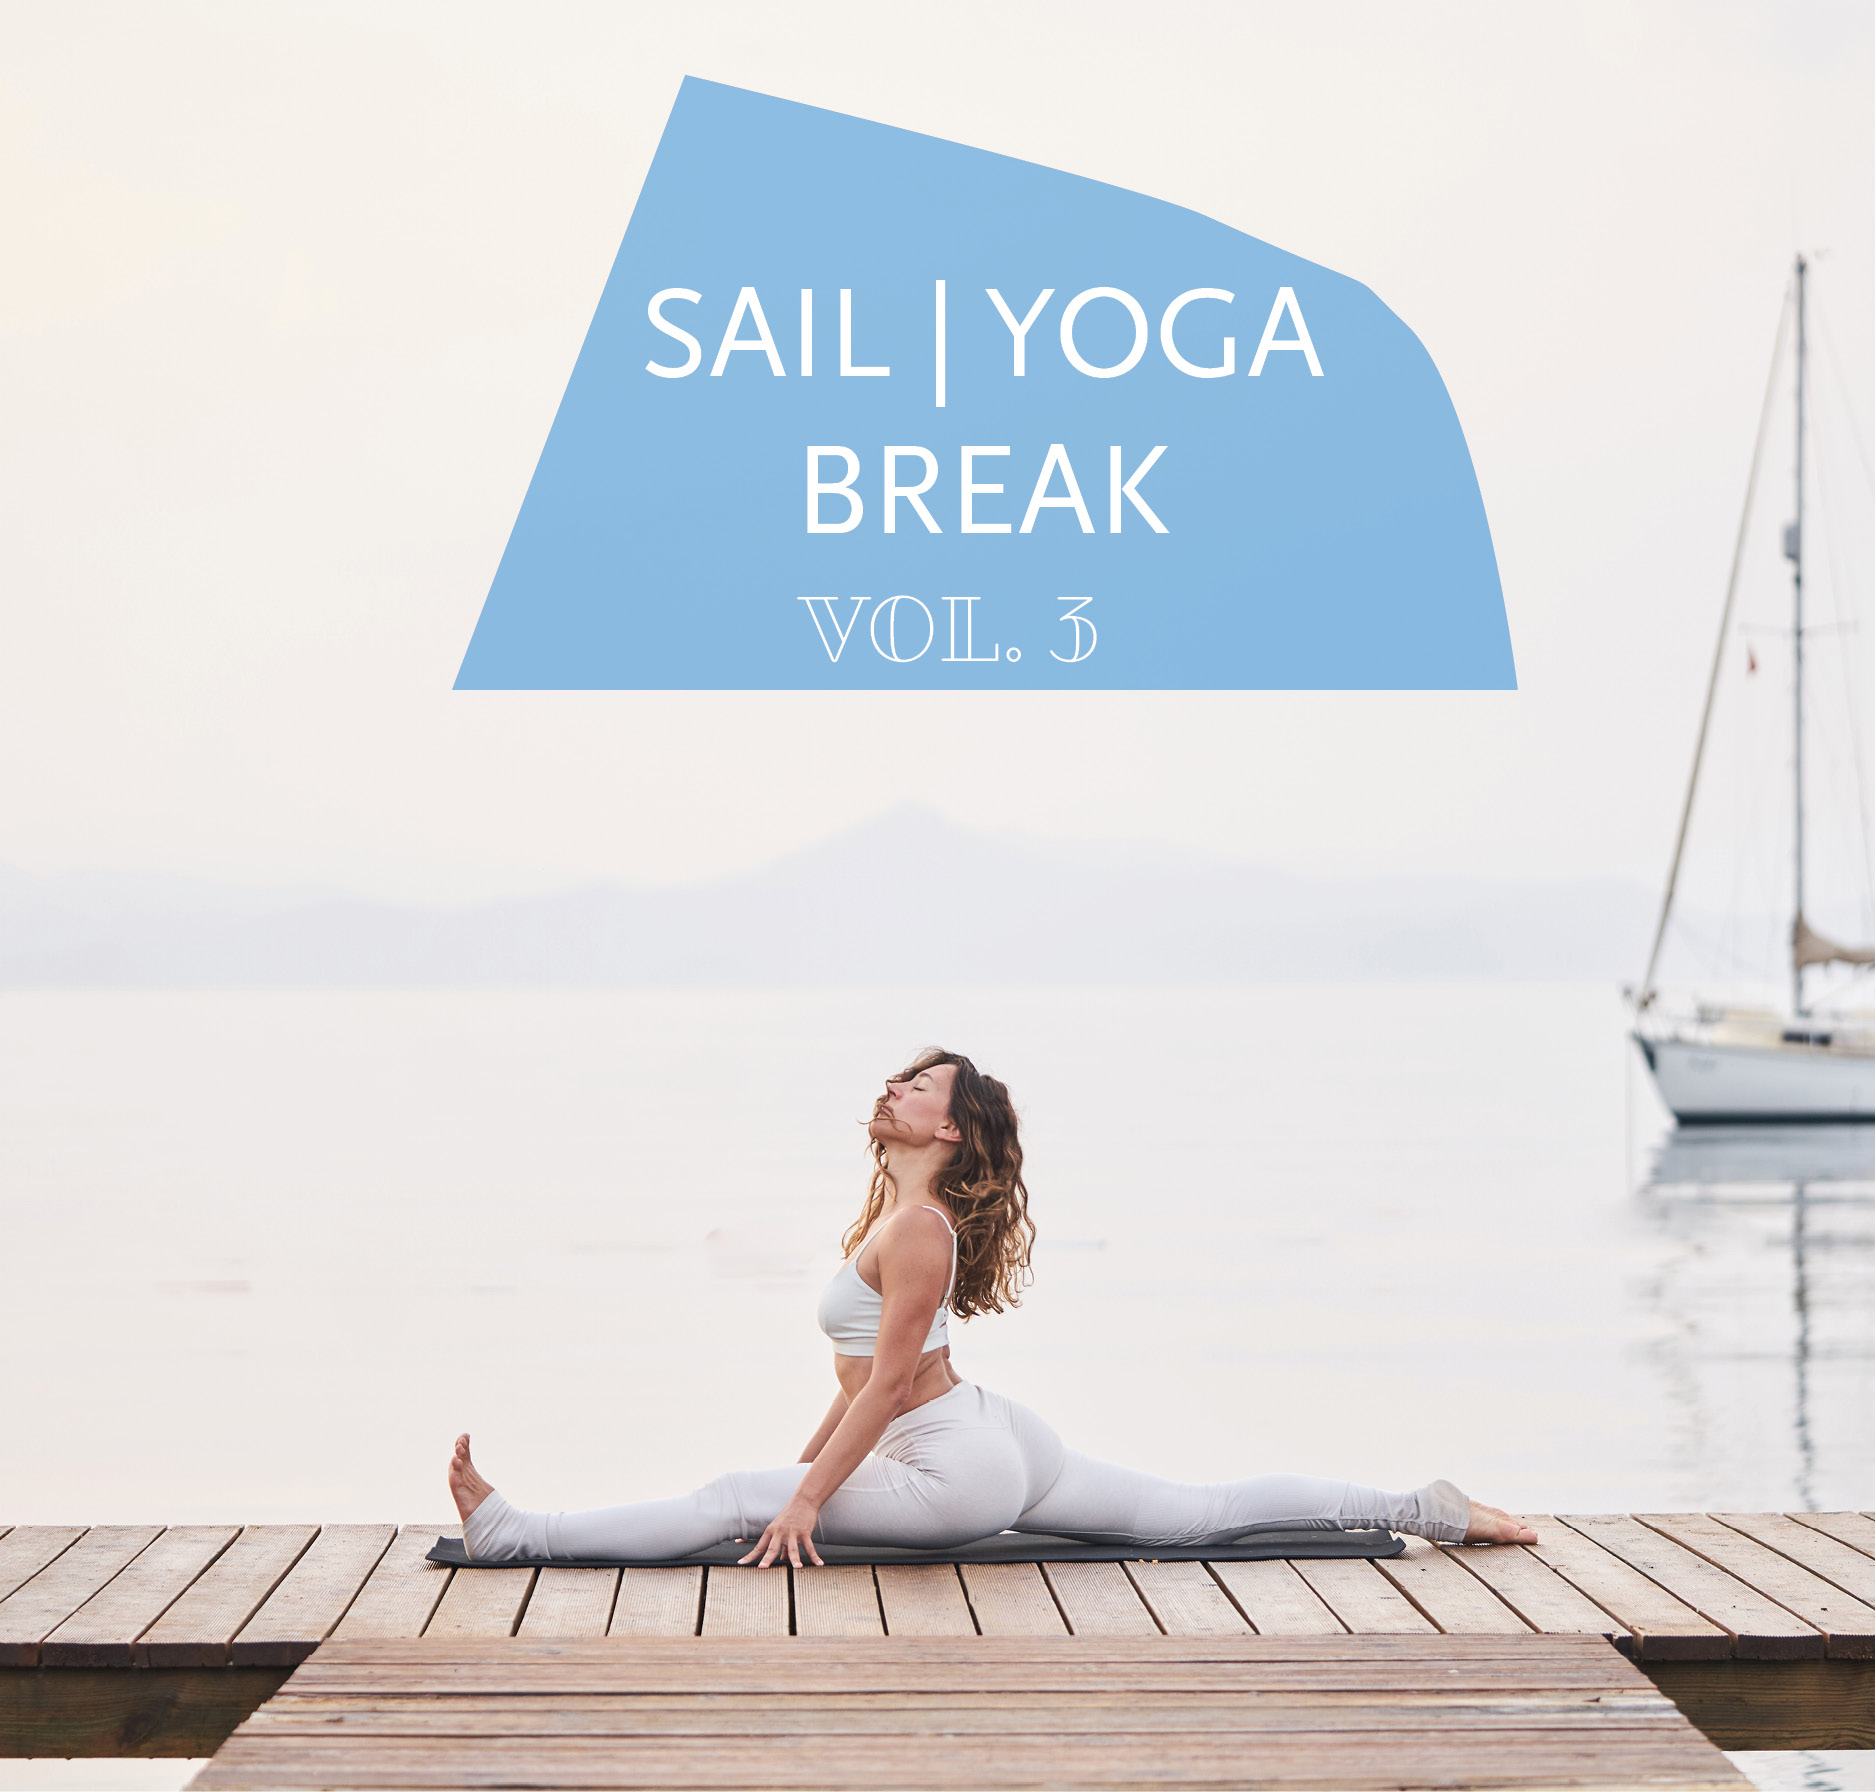 Sail Yoga Break Vol 3 Slider